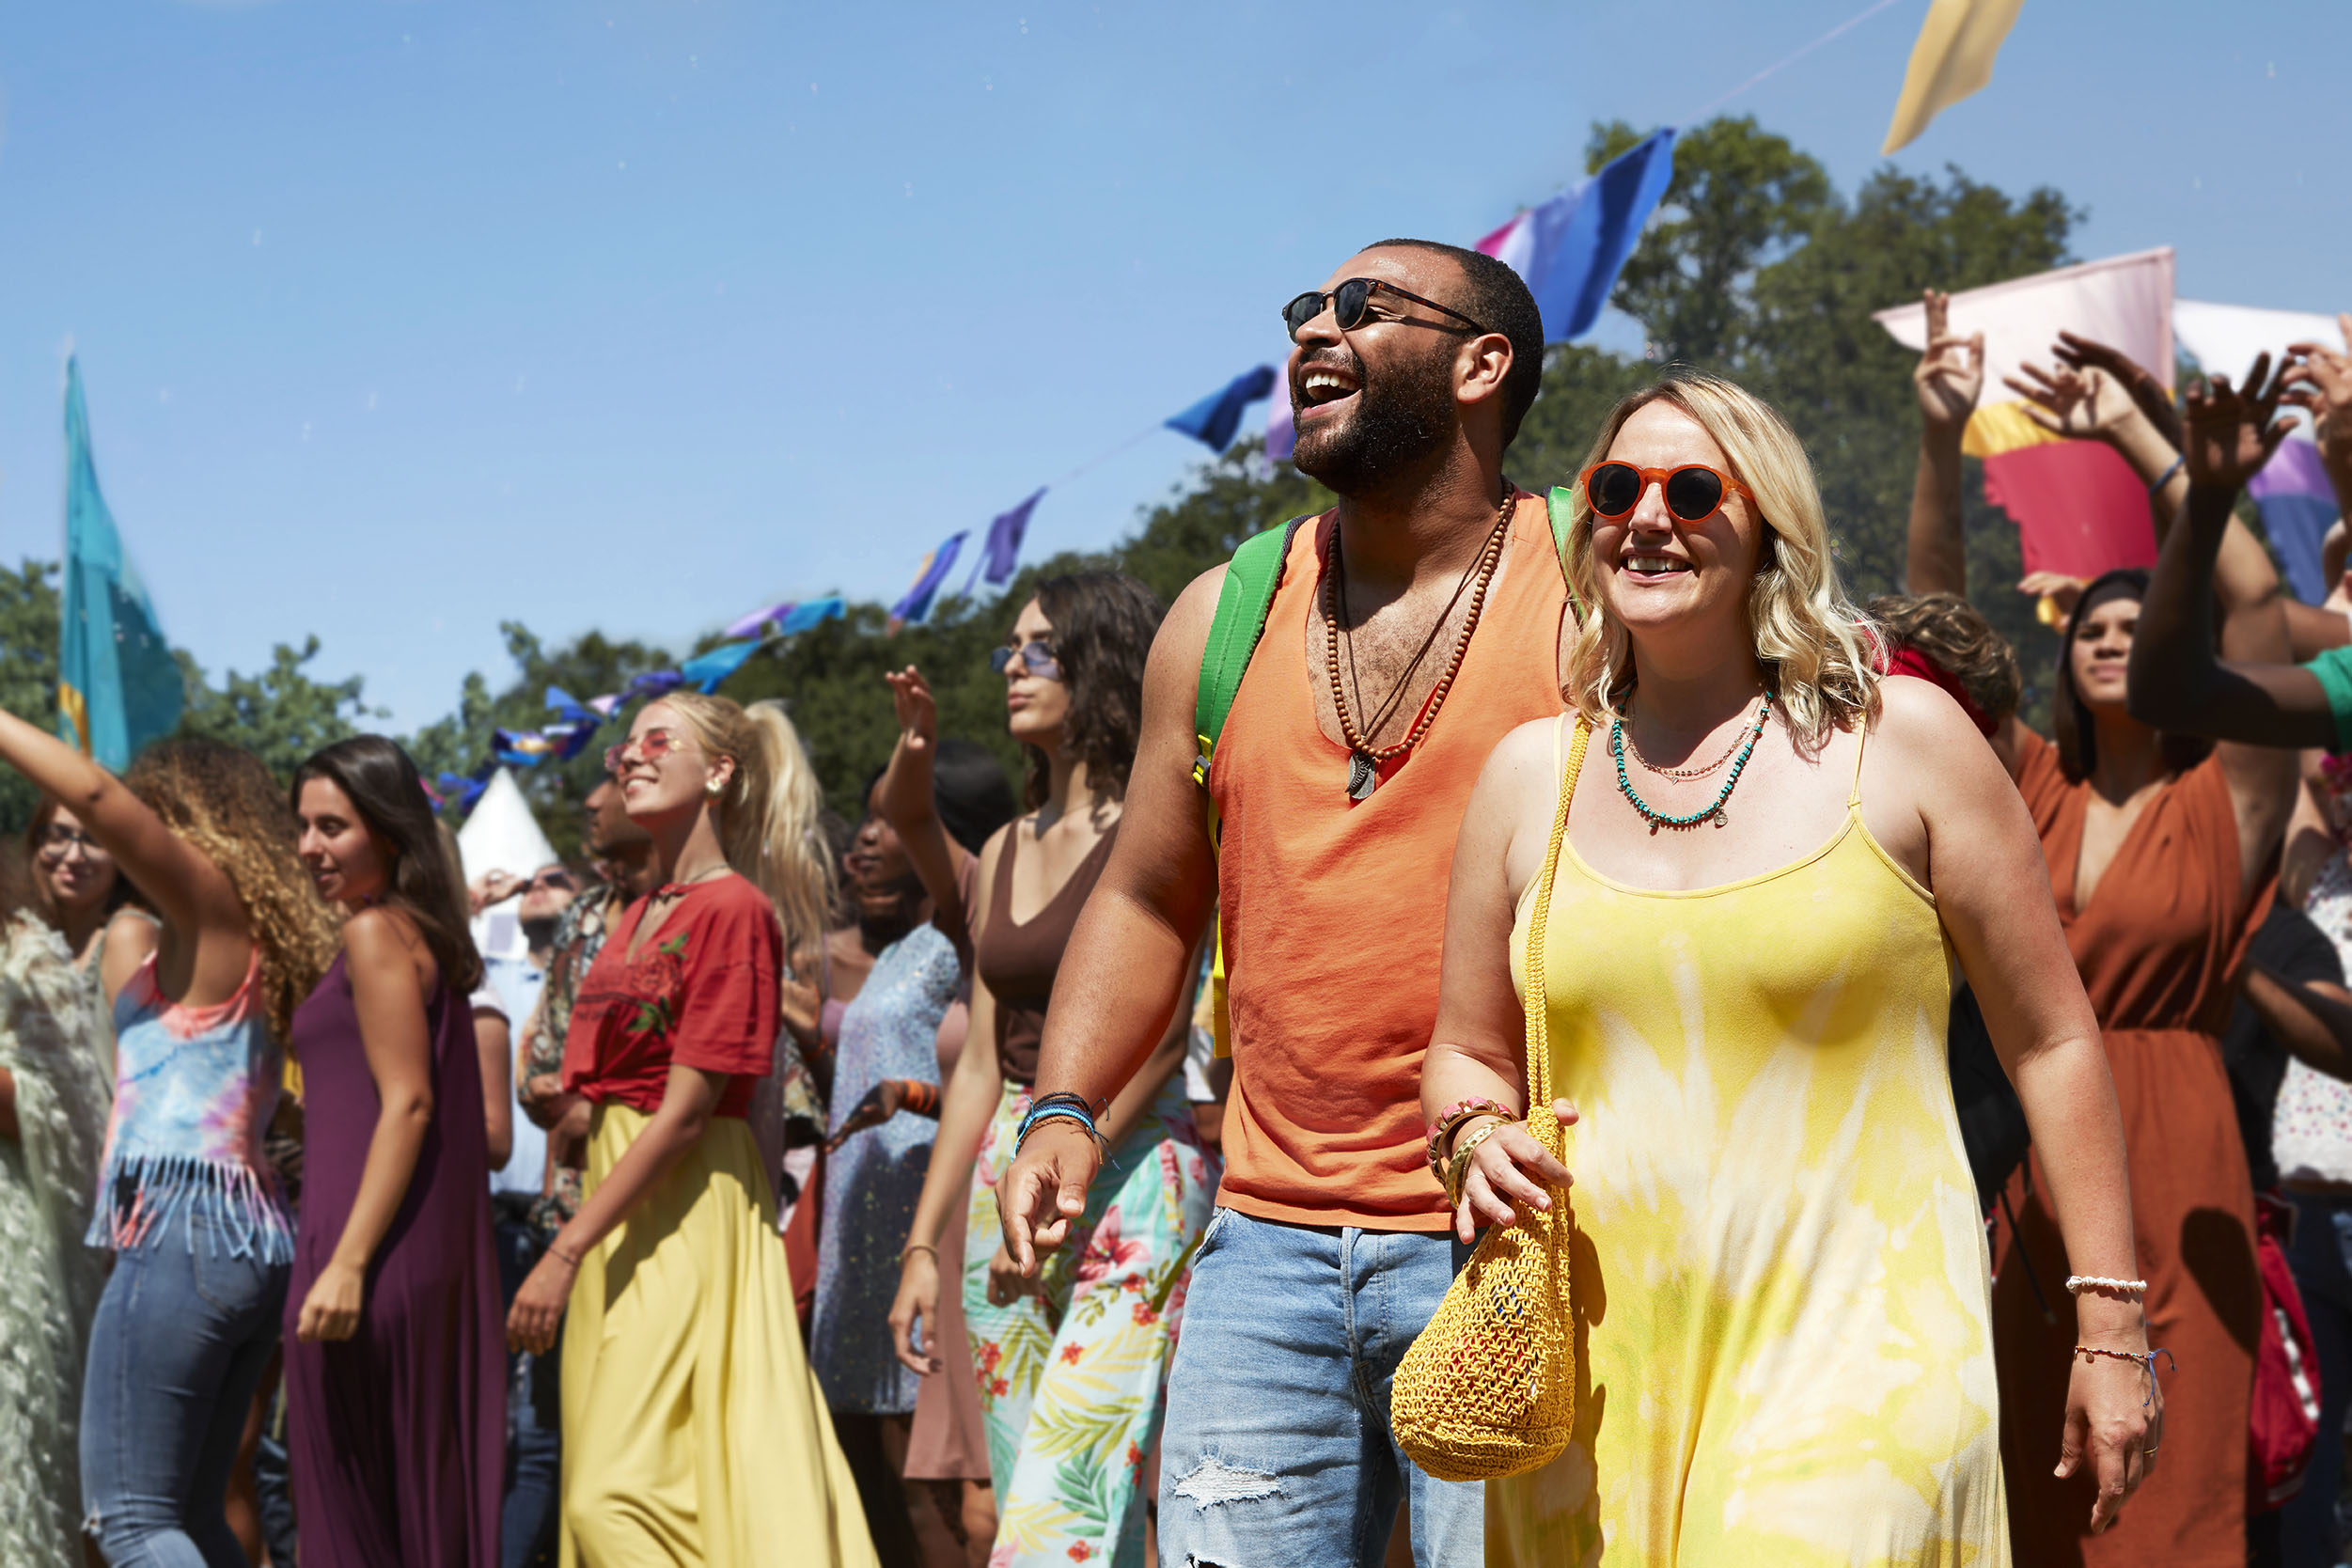 'Find Your Happy Place' is the Message in Barclays' New Ad Campaign